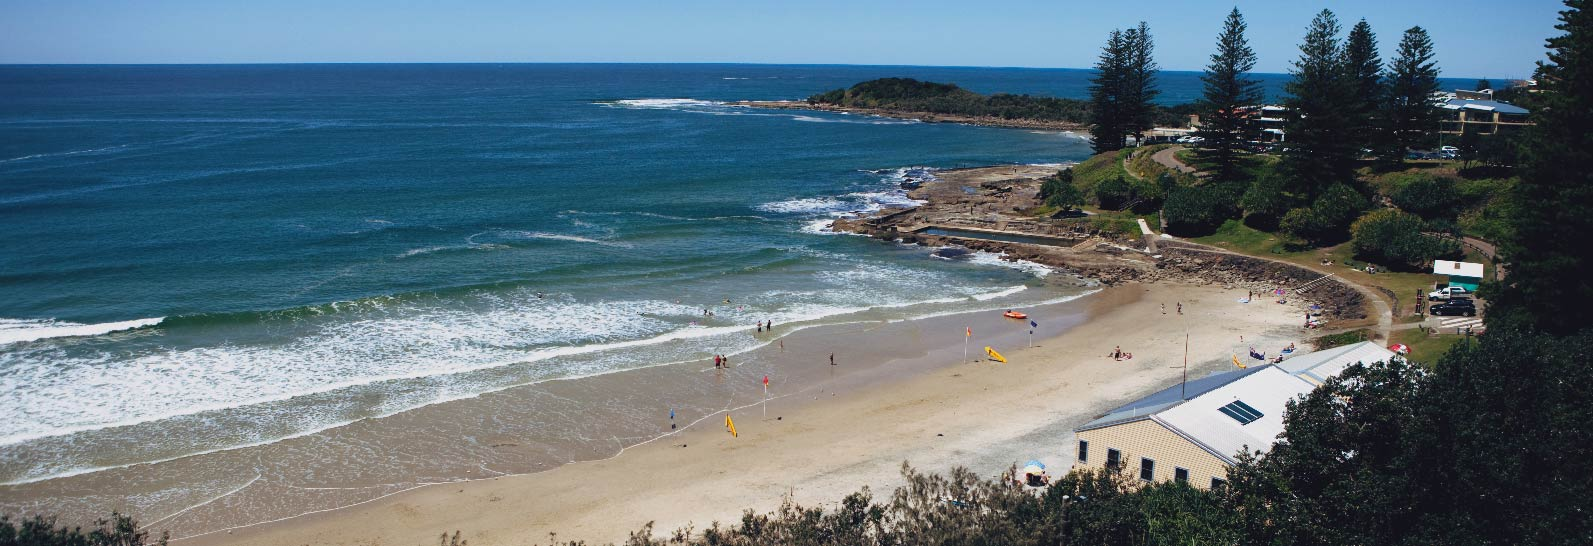 Ocean Views Yamba Main Beach